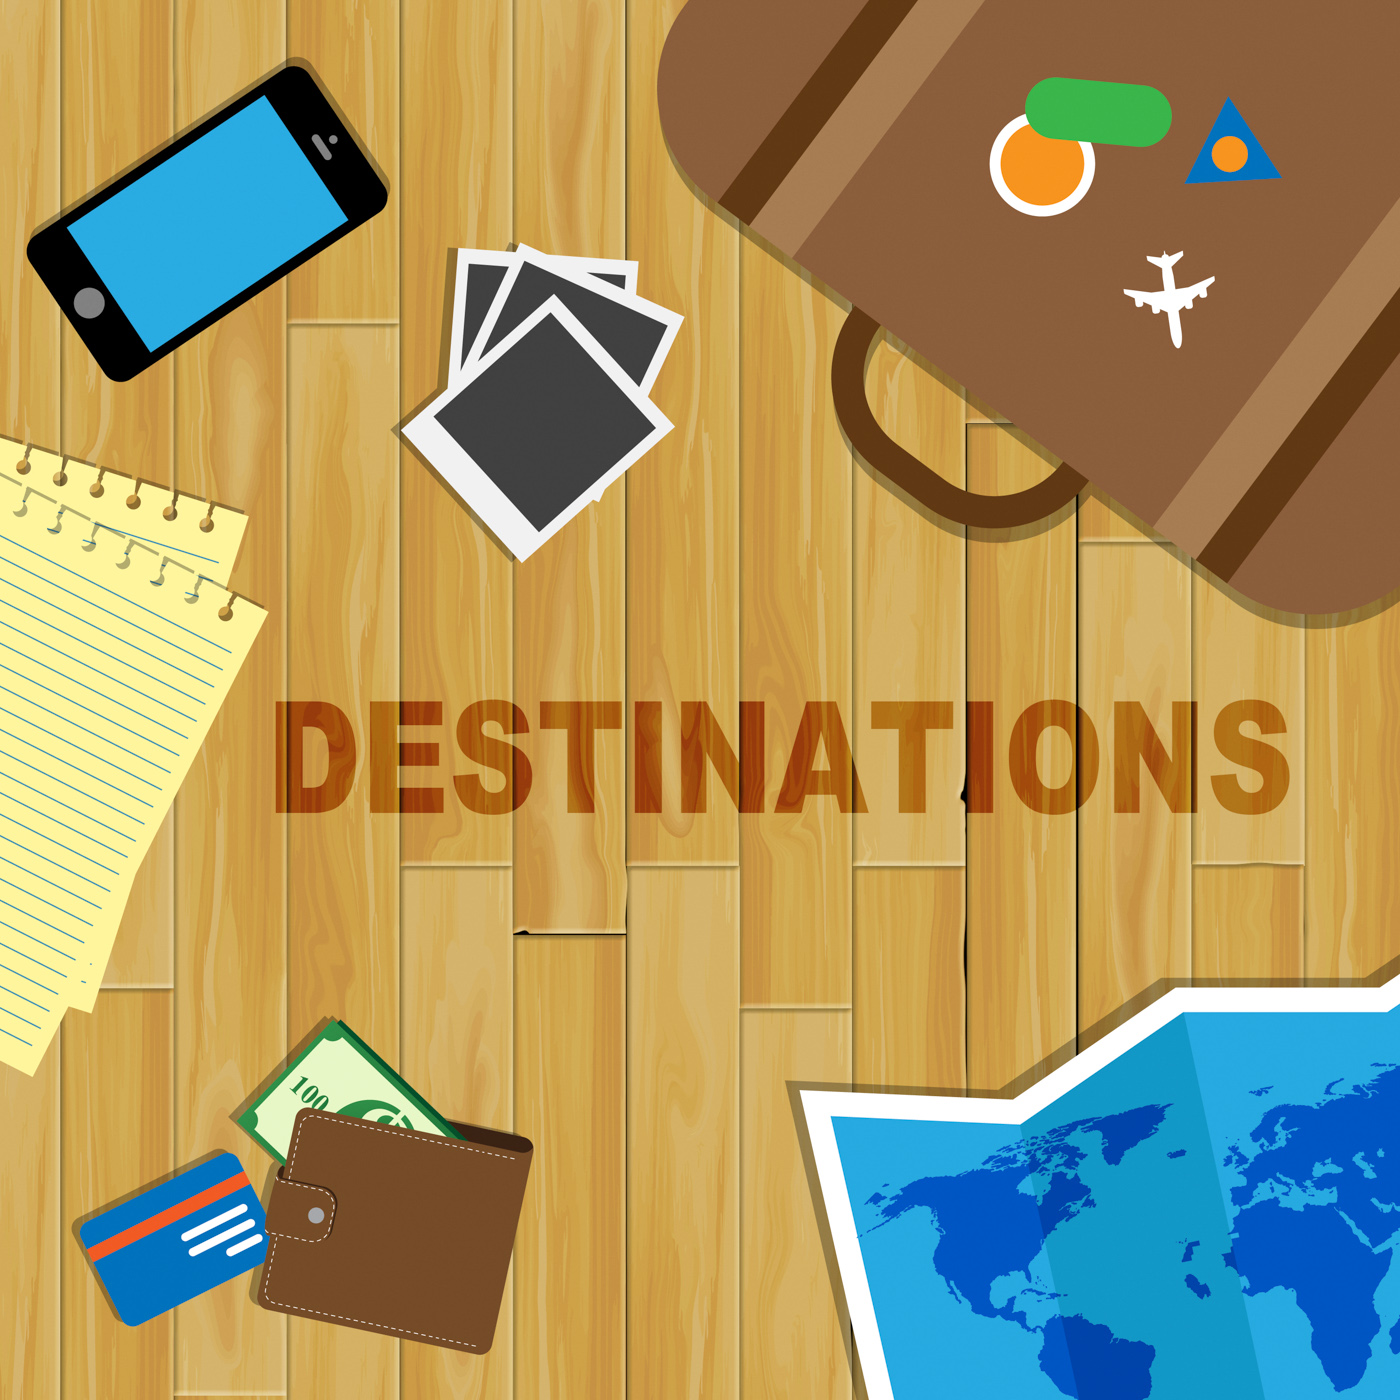 Travel destinations indicates journeys travelling and sightseeing photo